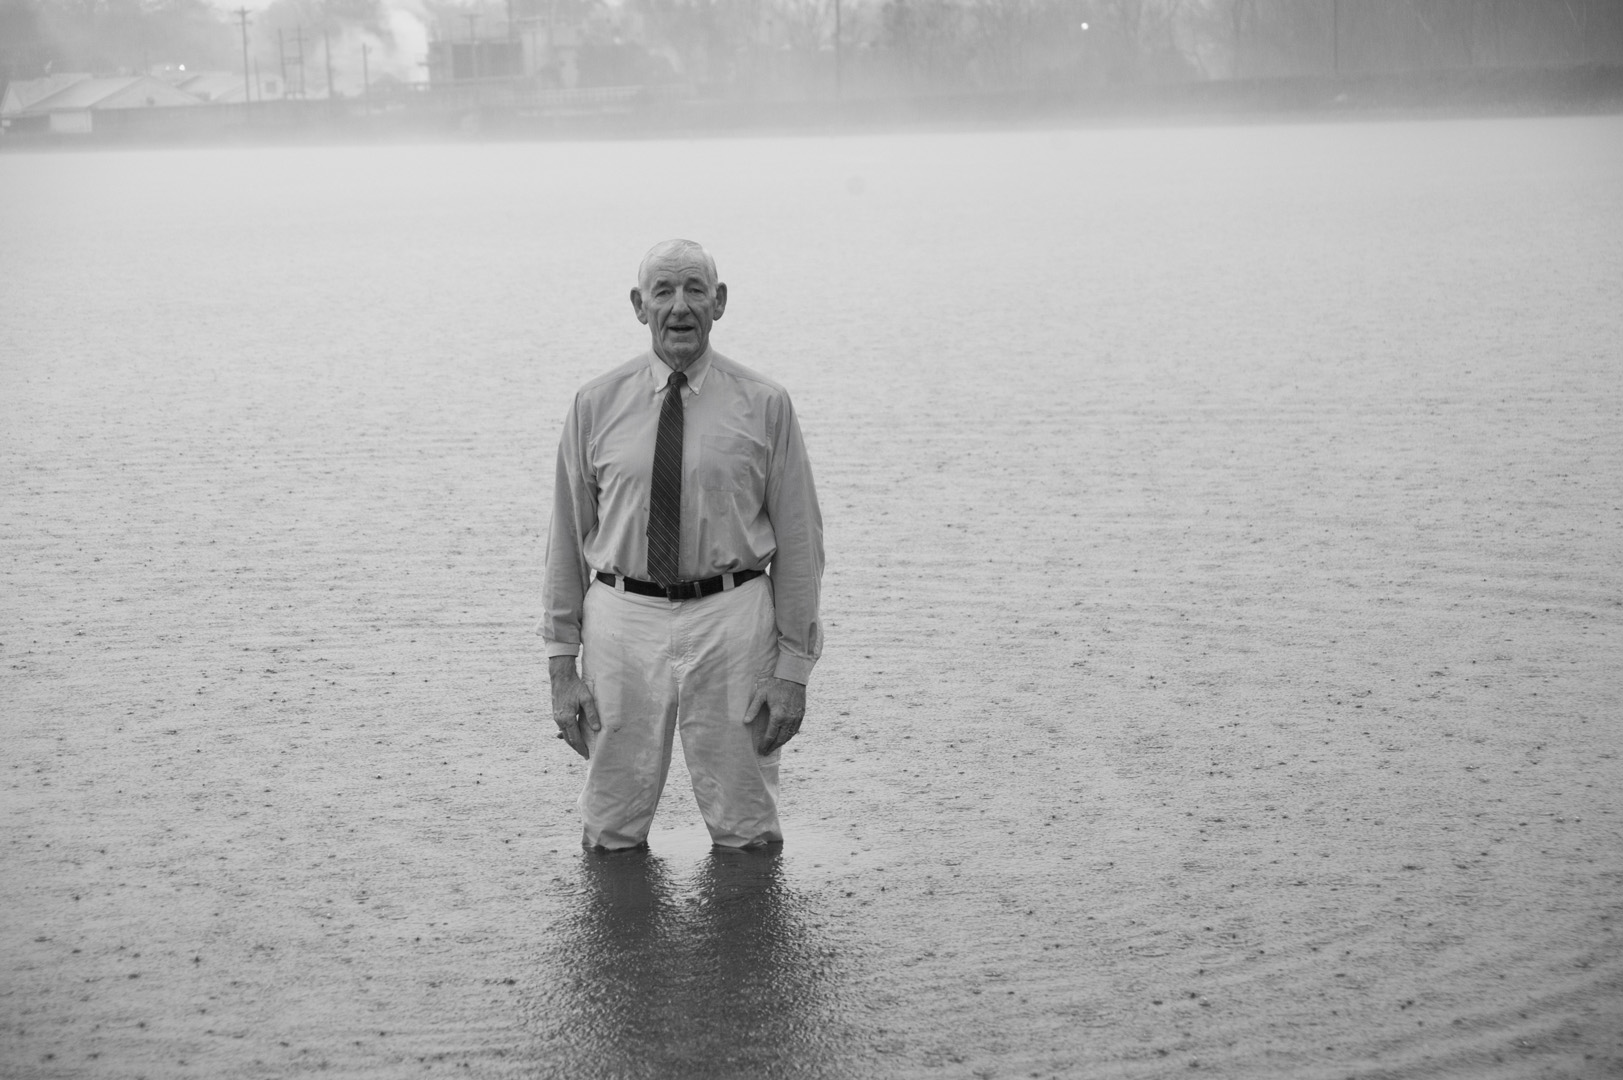 dad in bw standing in water019.jpg